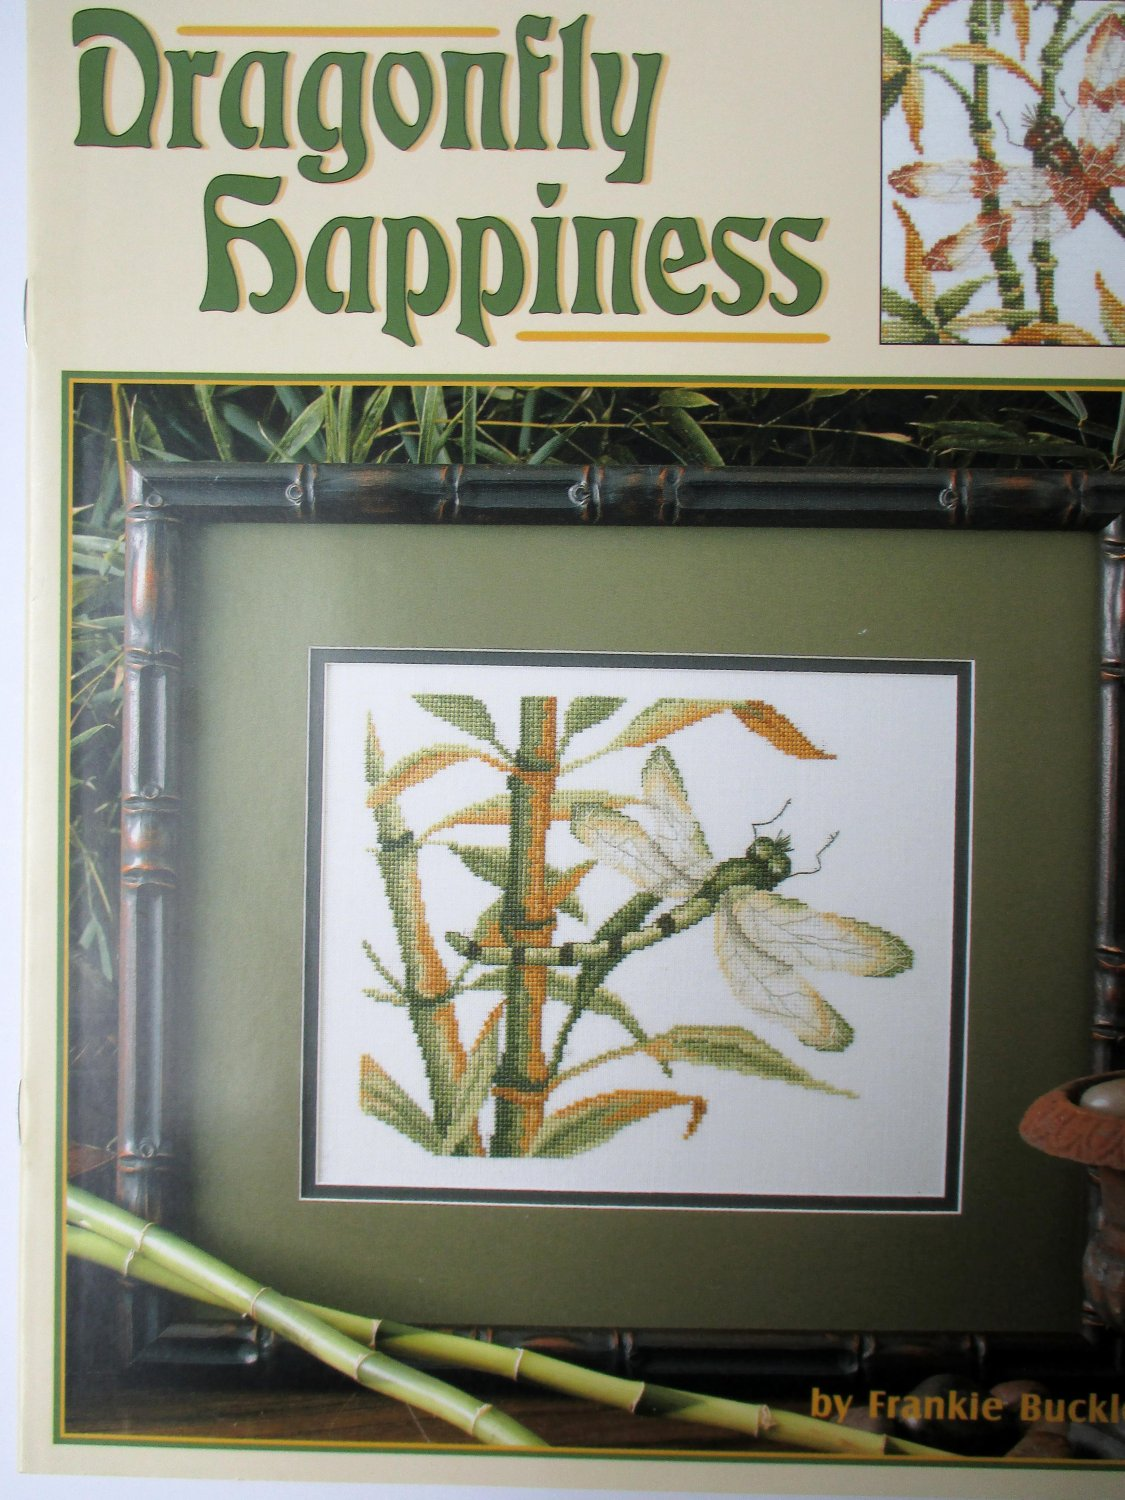 Happiness Dragonfly Dreams 100 Blank Page Hard Cover Journal Diary Lisa Pollock